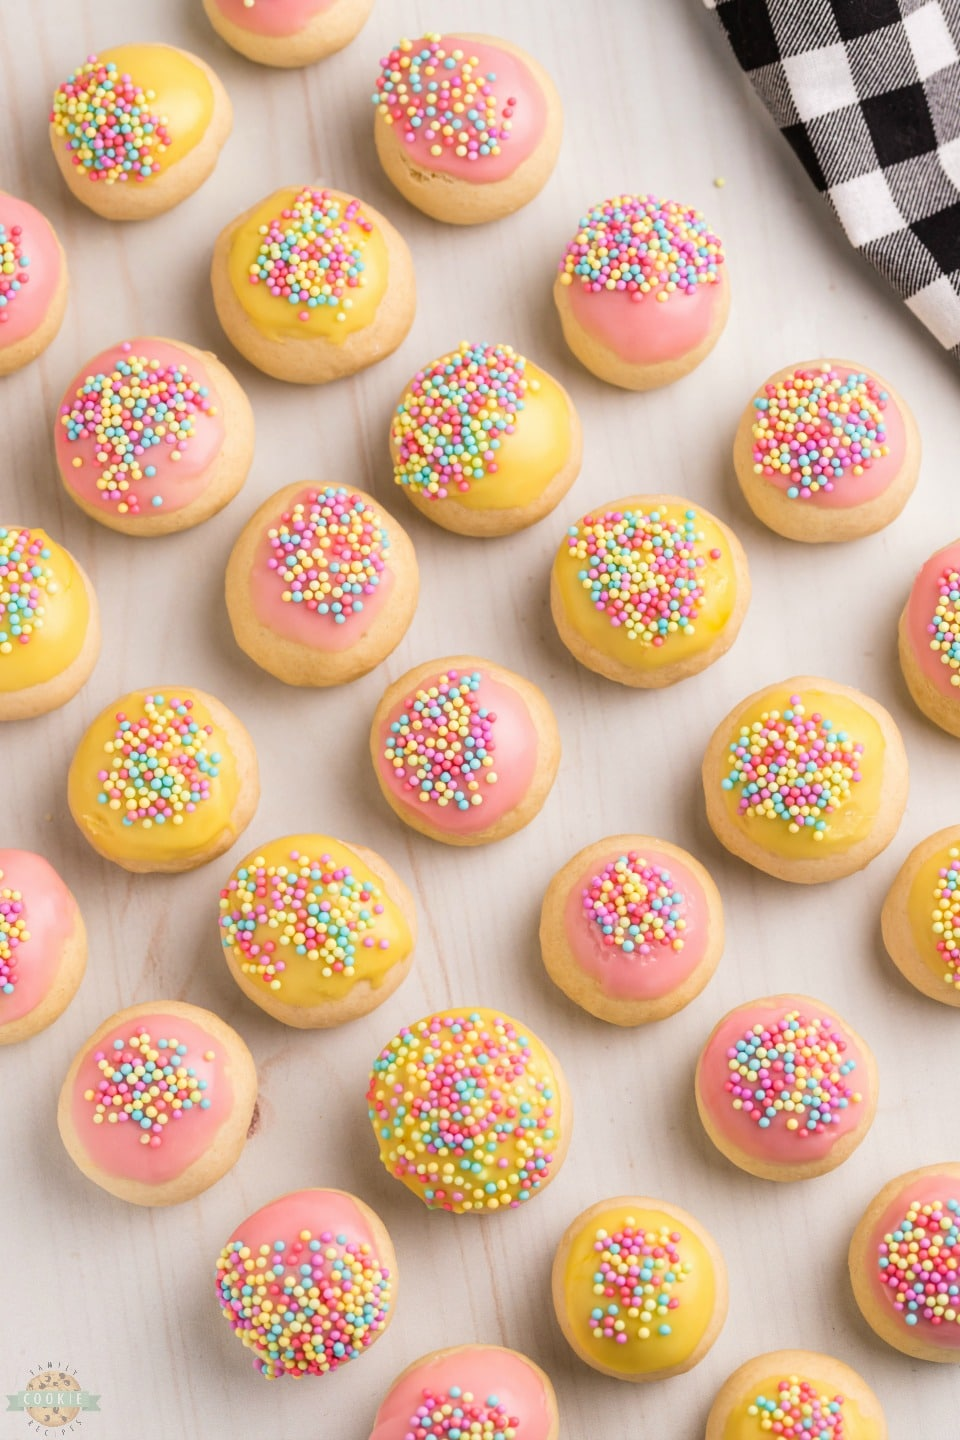 Homemade Frosted Italian Cookies recipe